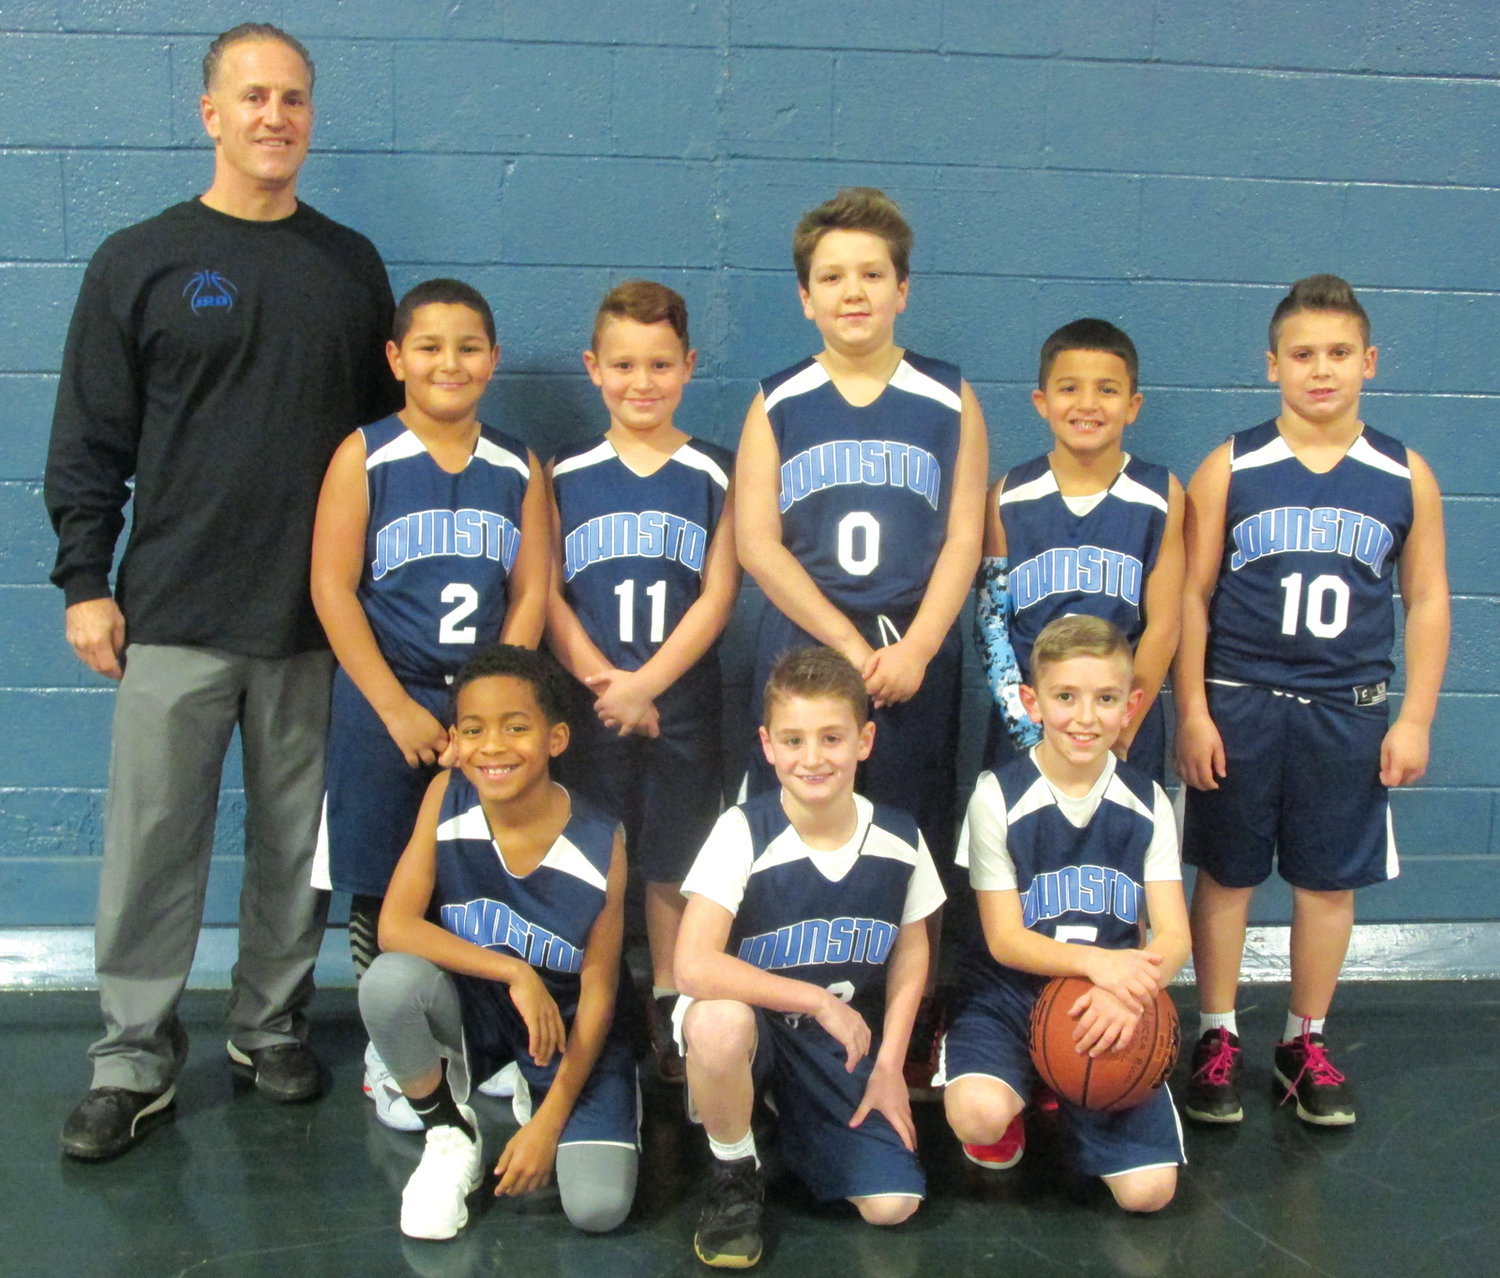 RICCI'S ROSTER: Jamie Ricci coaches this Johnston third-fourth grade level  team that includes, in front from left: Chris Cherry, Jon Costa and Lucca Ricci. Top: Lyalo Harrison, Steven Parlady, Aiden Neil, Jordan Diclo and Max Pilkington.